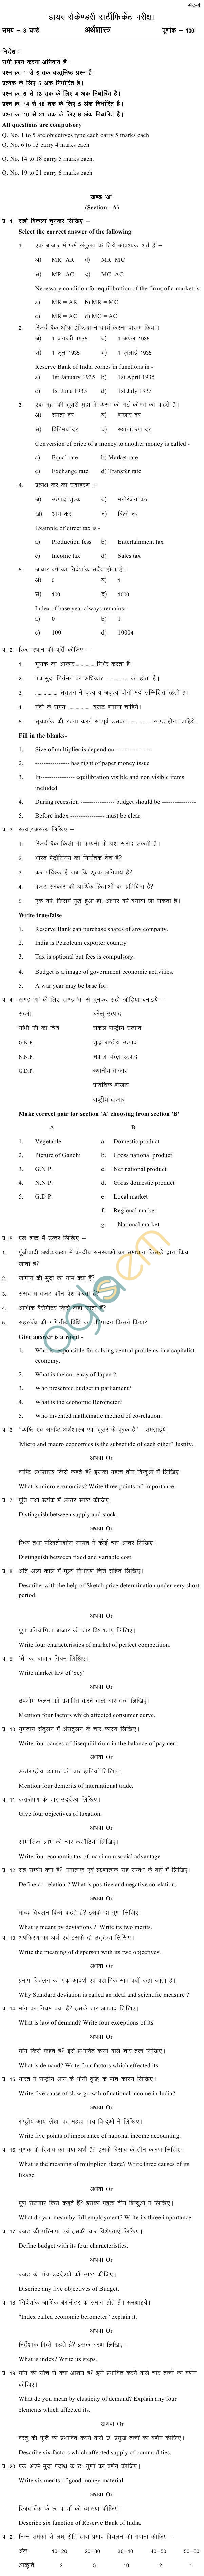 MP Board Class XII Economics Model Questions & Answers - Set 4